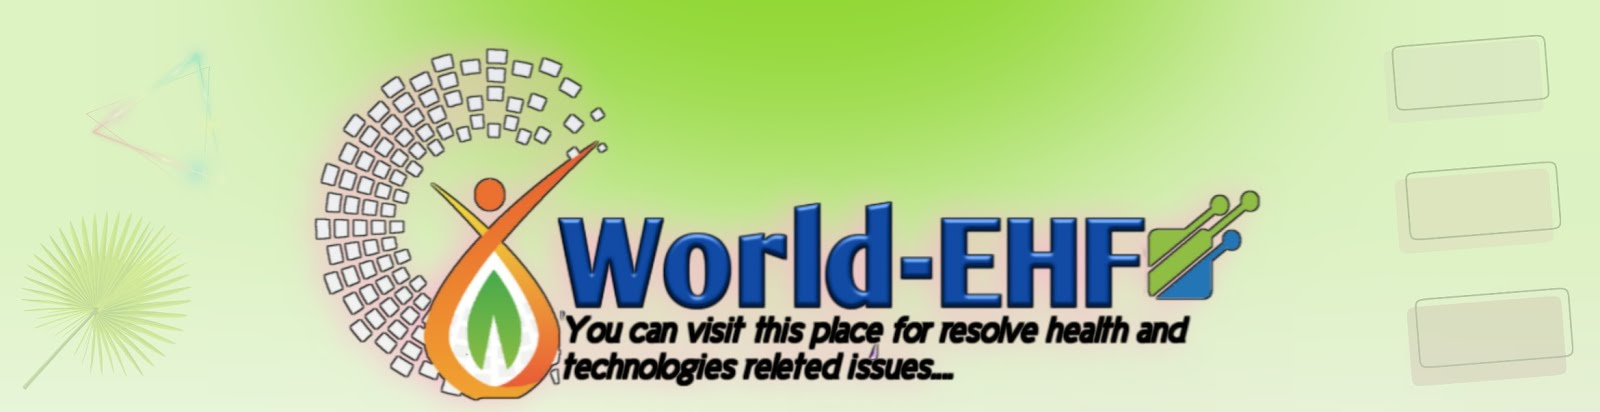 World EHF